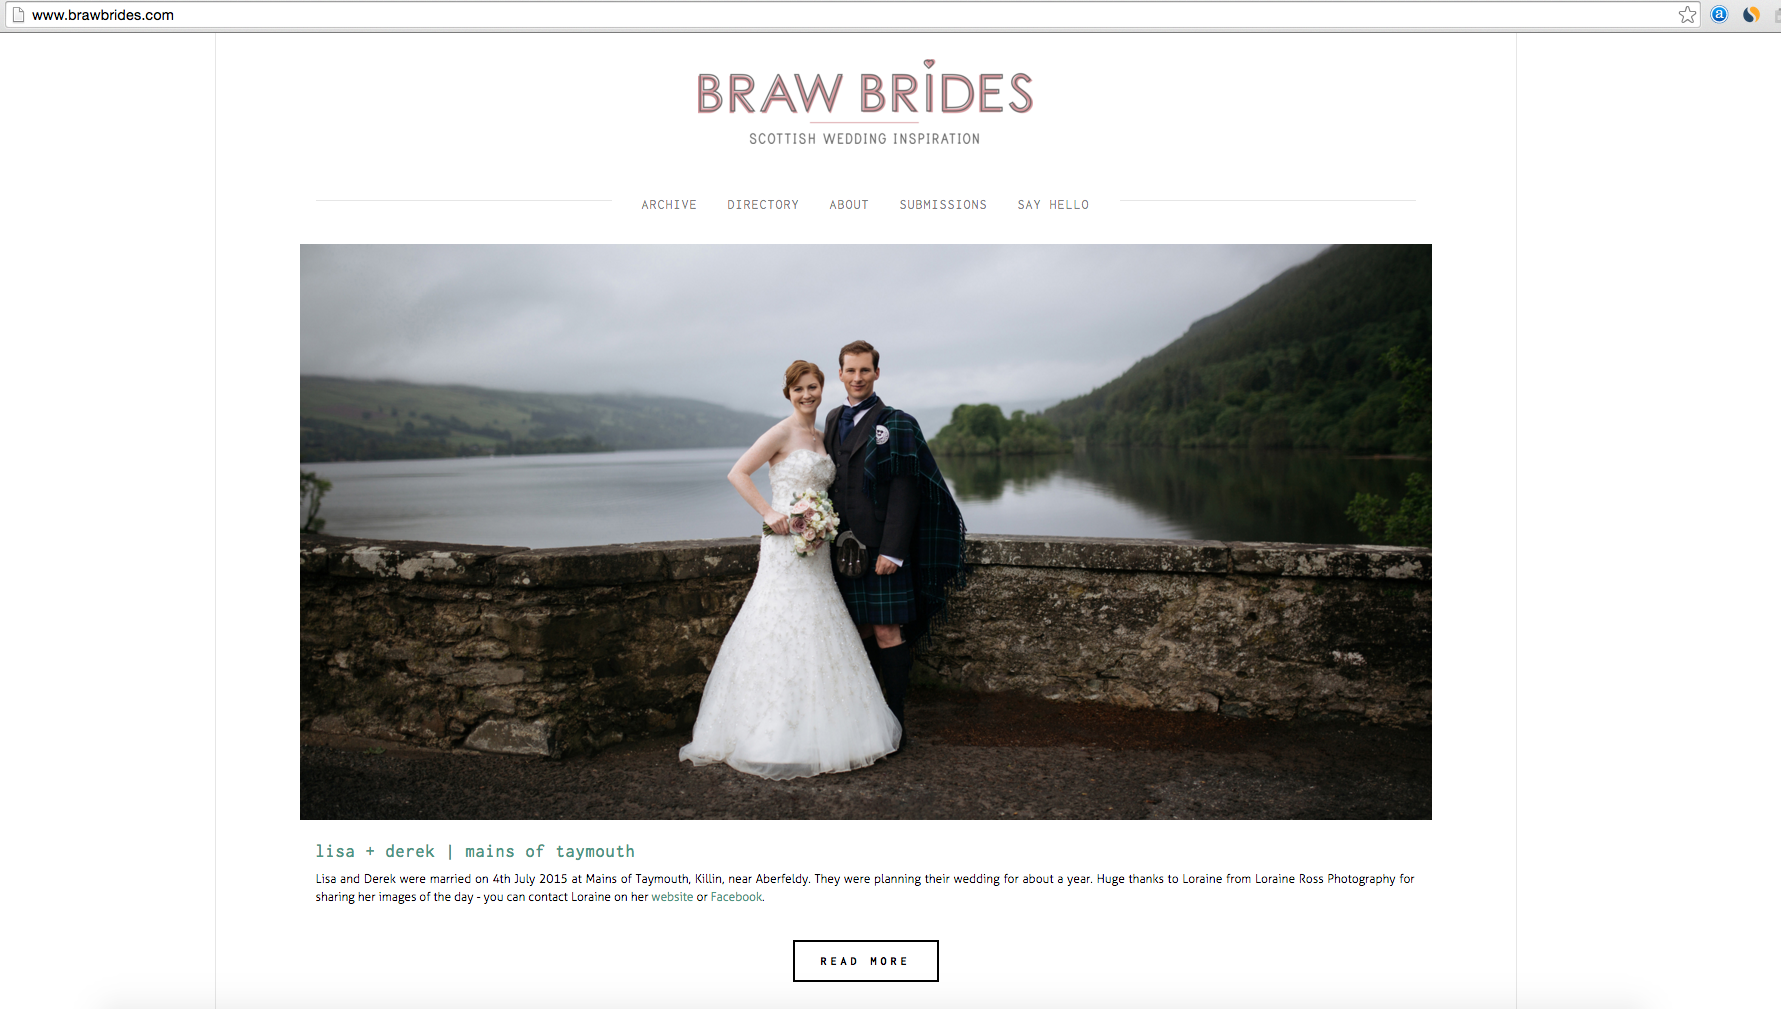 braw brides, featured work, aberfeldy, mains of taymouth, kenmore wedding